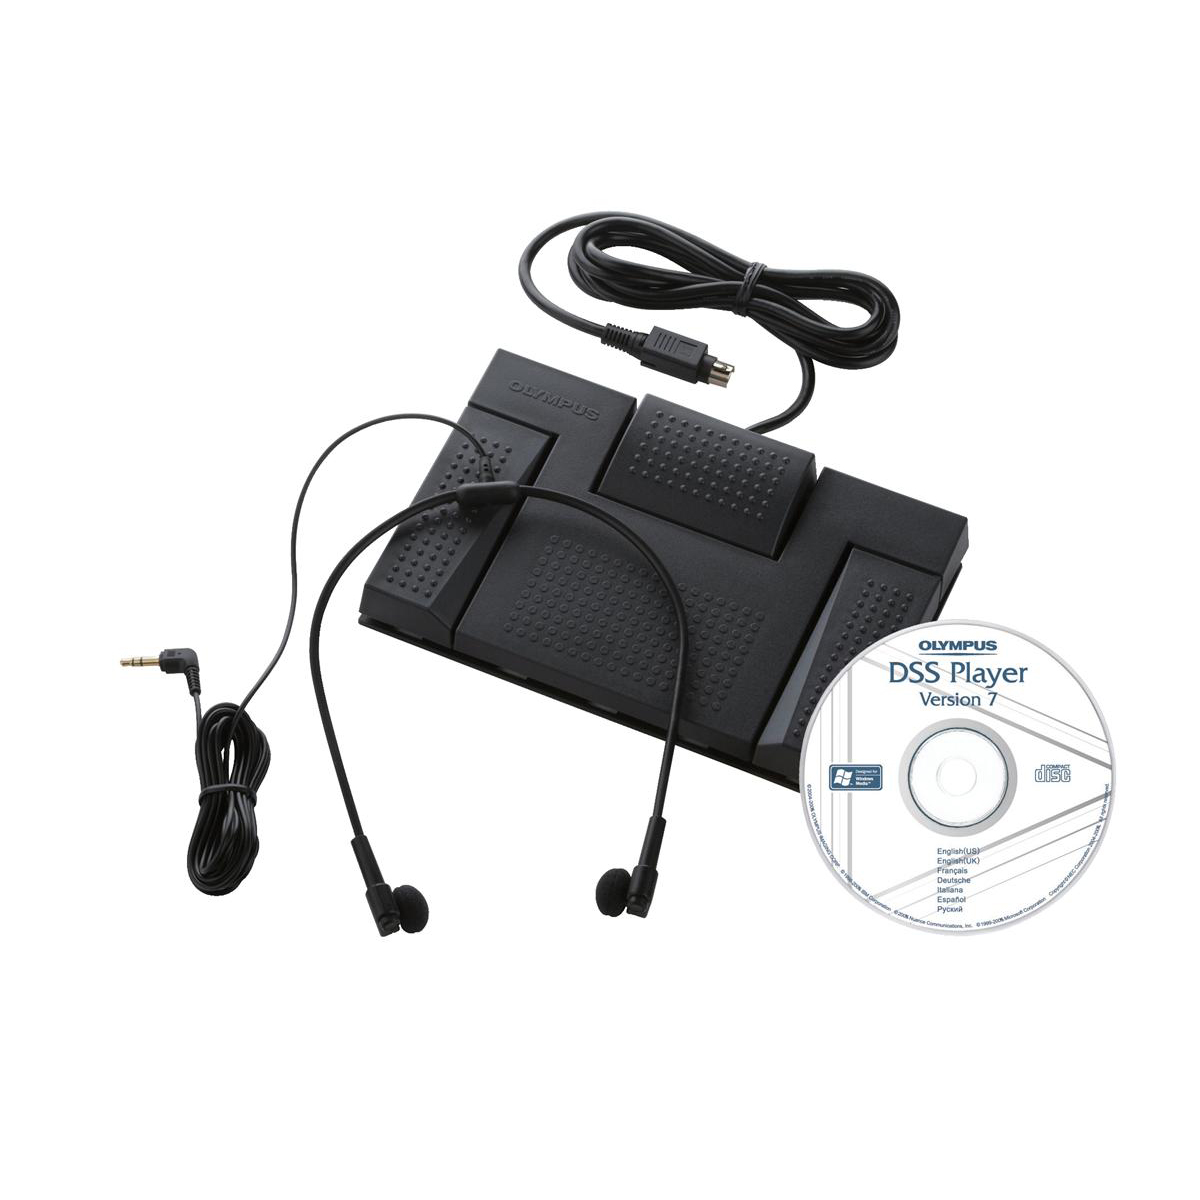 Image for Olympus AS2400 Digital Transcription Kit RS-28 Footswitch E-102 Headset and DSS Software Ref N2275726